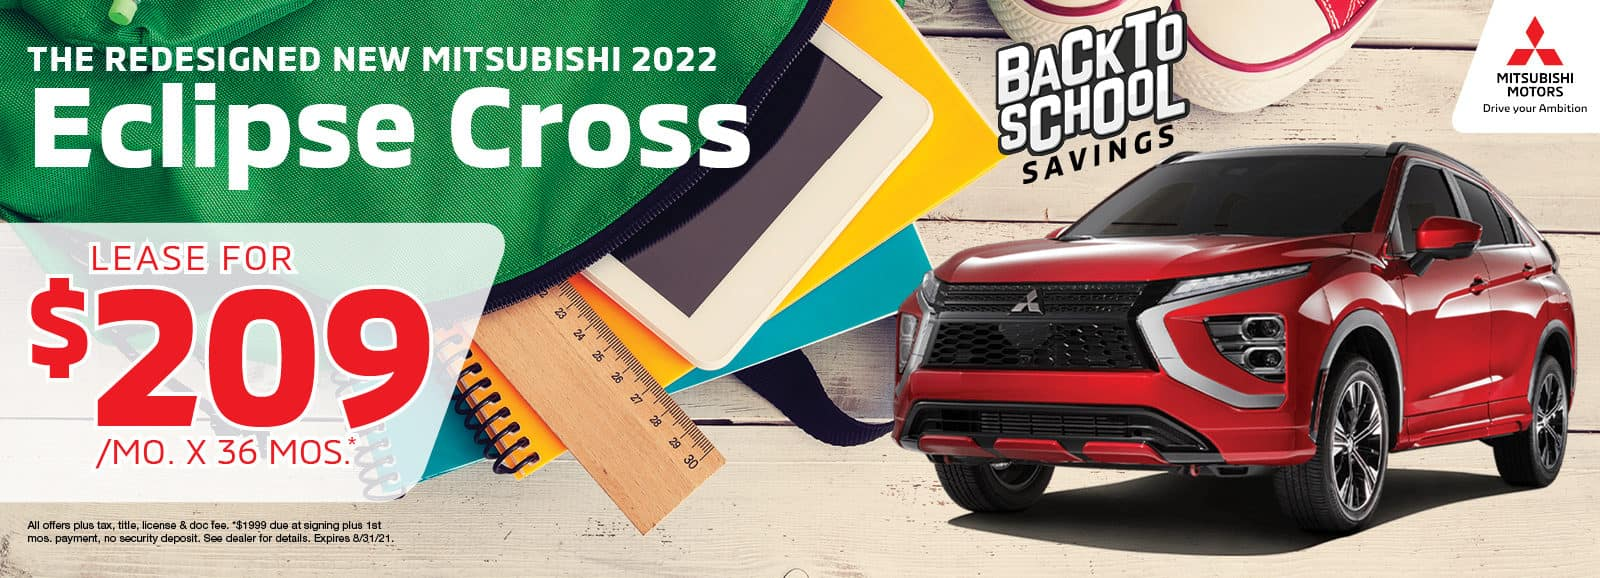 2022 Mitsubishi Eclipse Cross Lease for $209 per month for 36 months